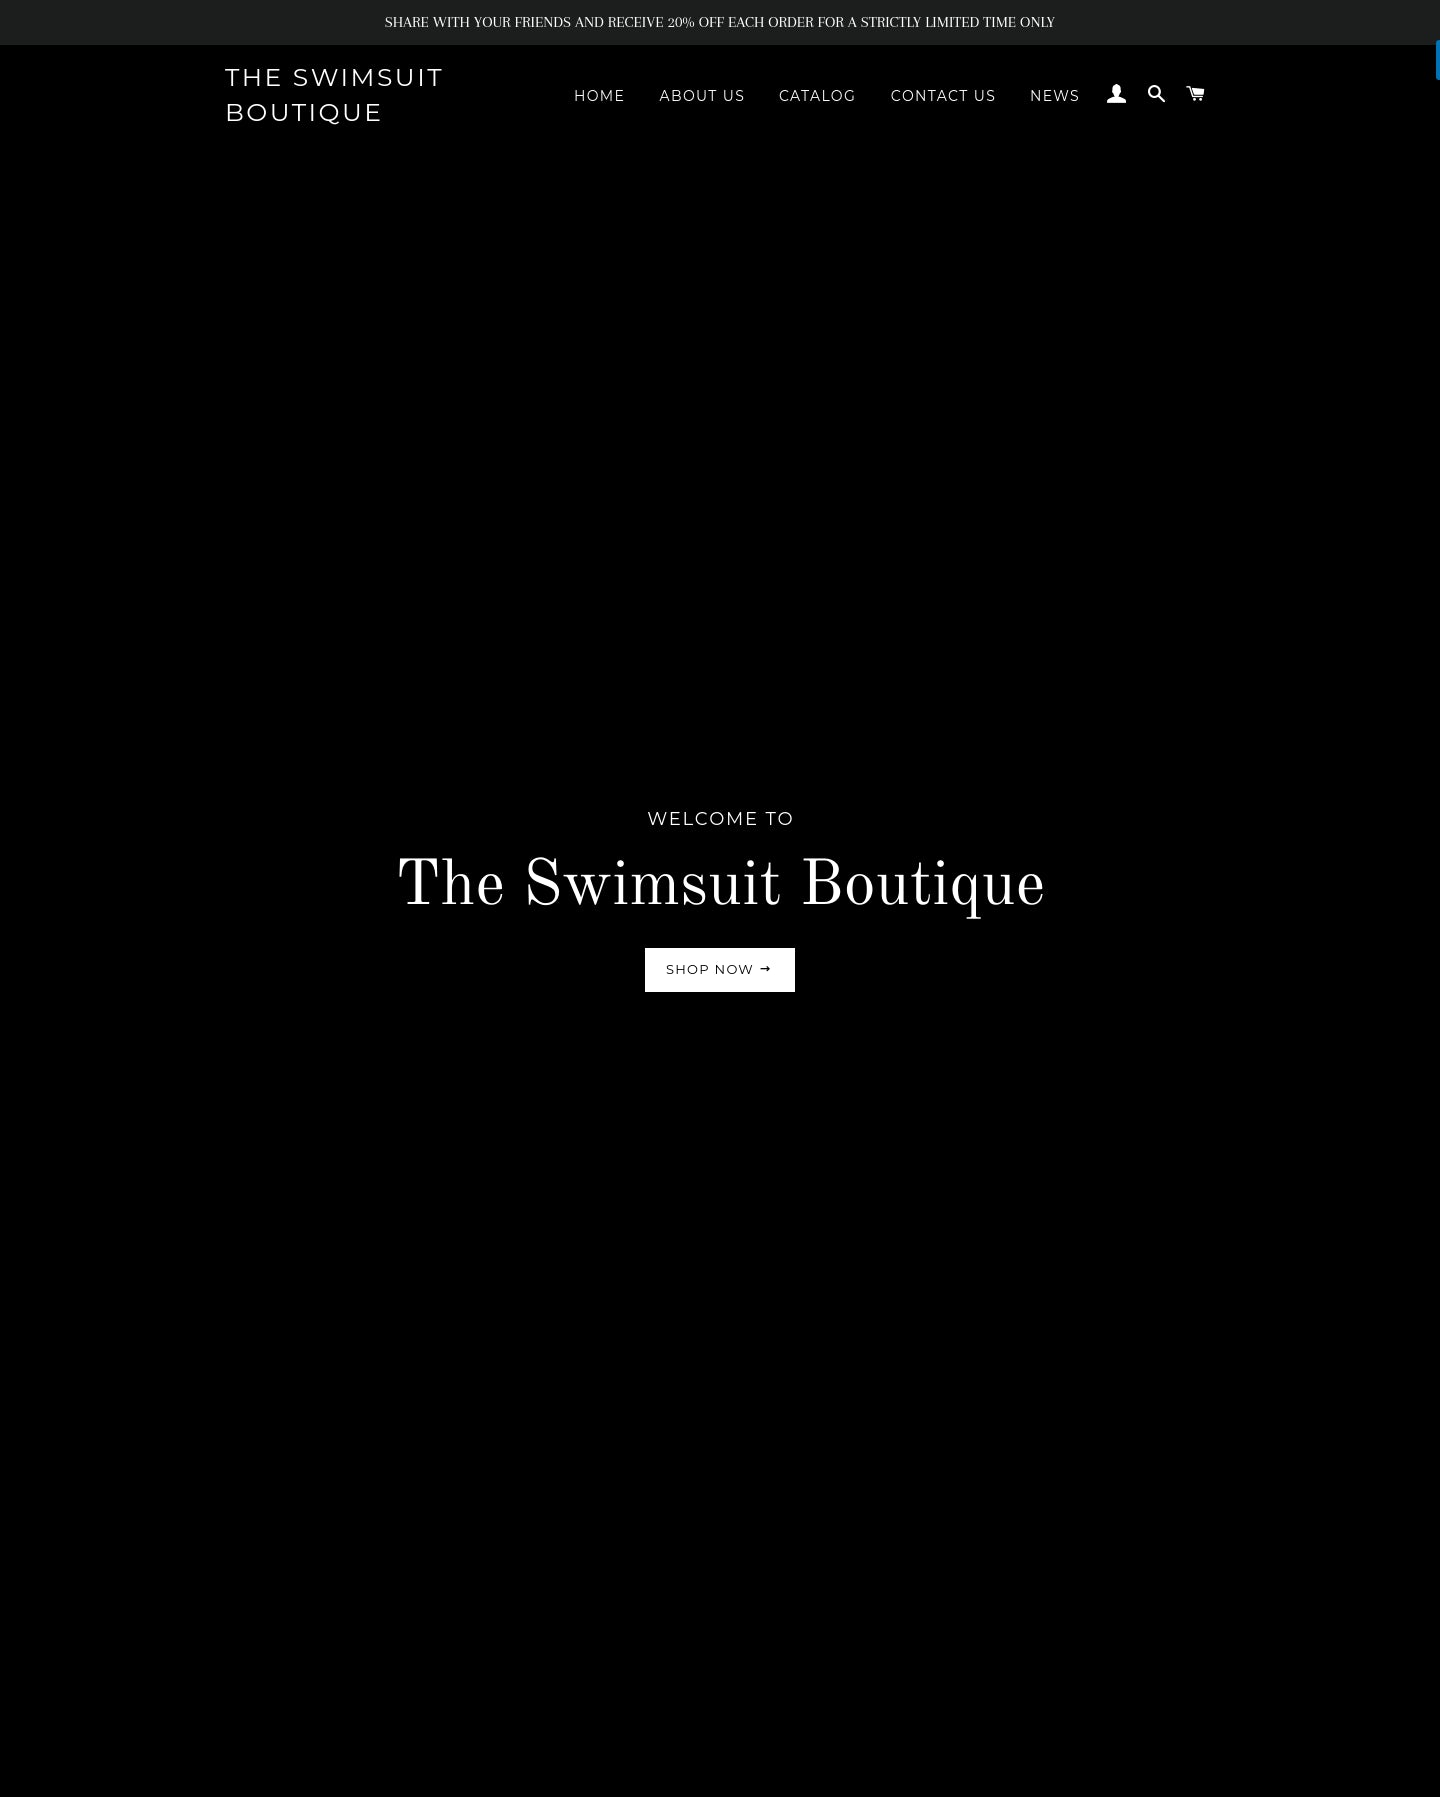 The Swimsuit Boutique Screenshot - 1